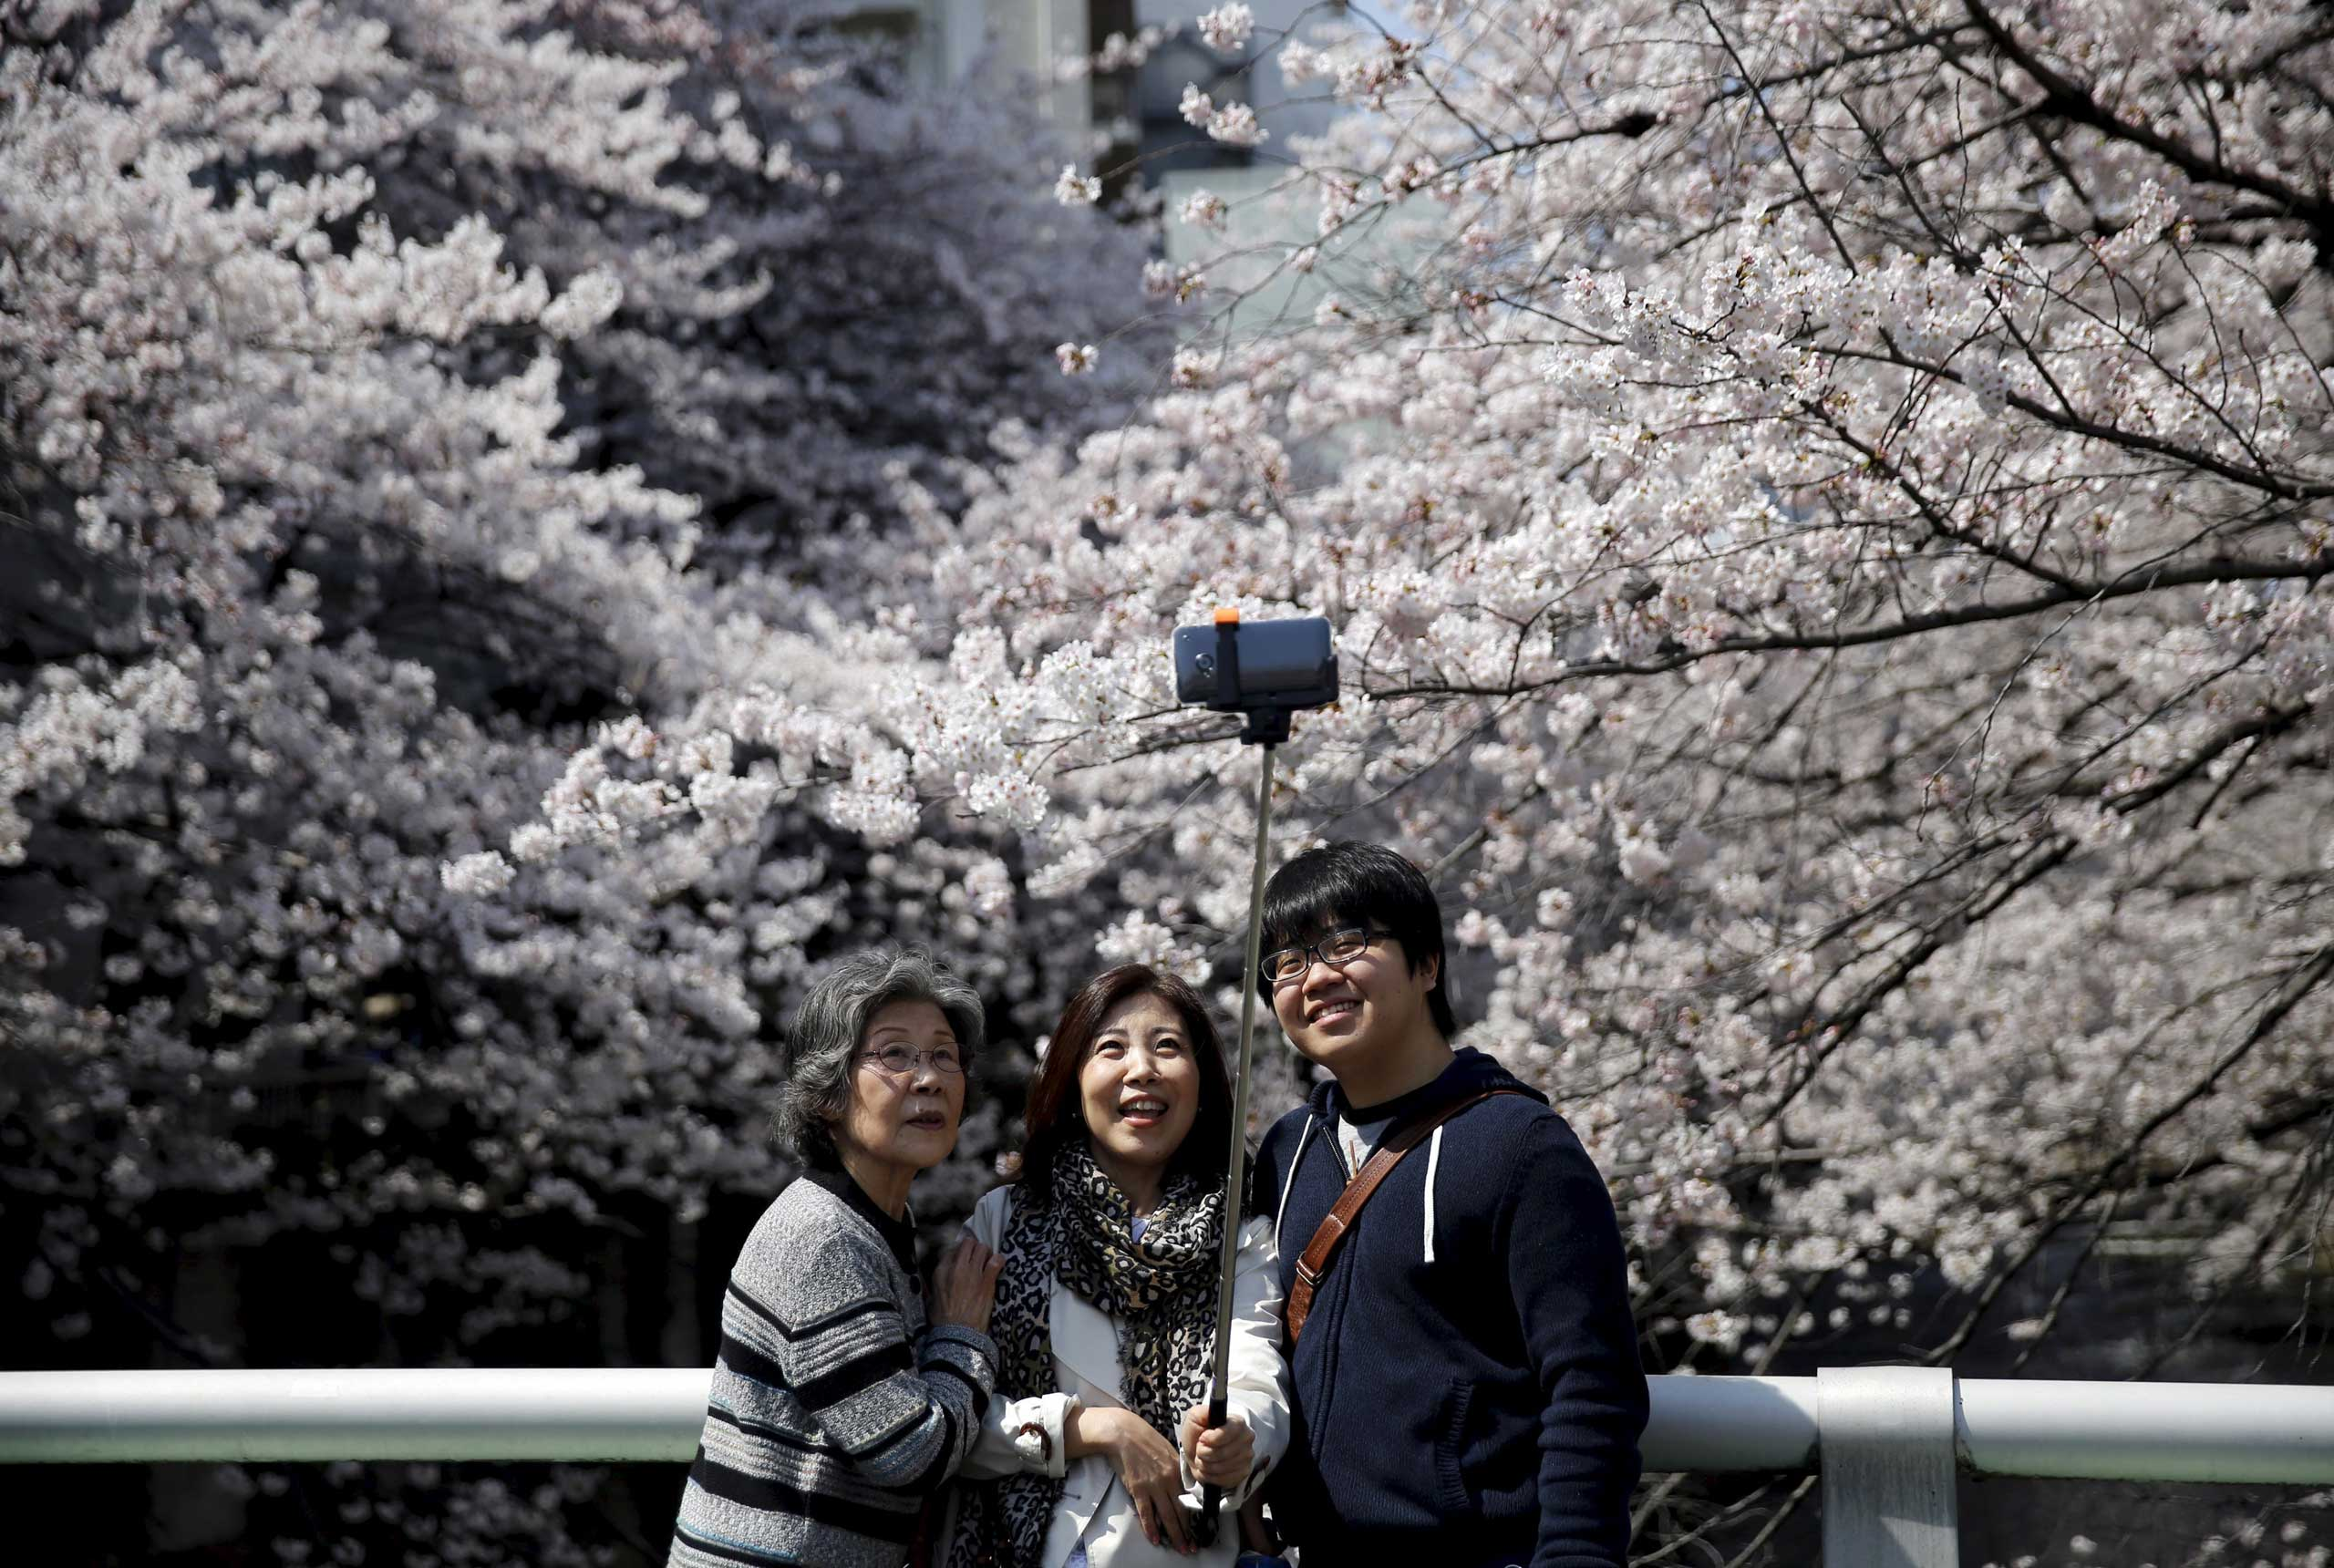 People take a selfie with cherry blossoms in full bloom in Tokyo, March 30, 2015.